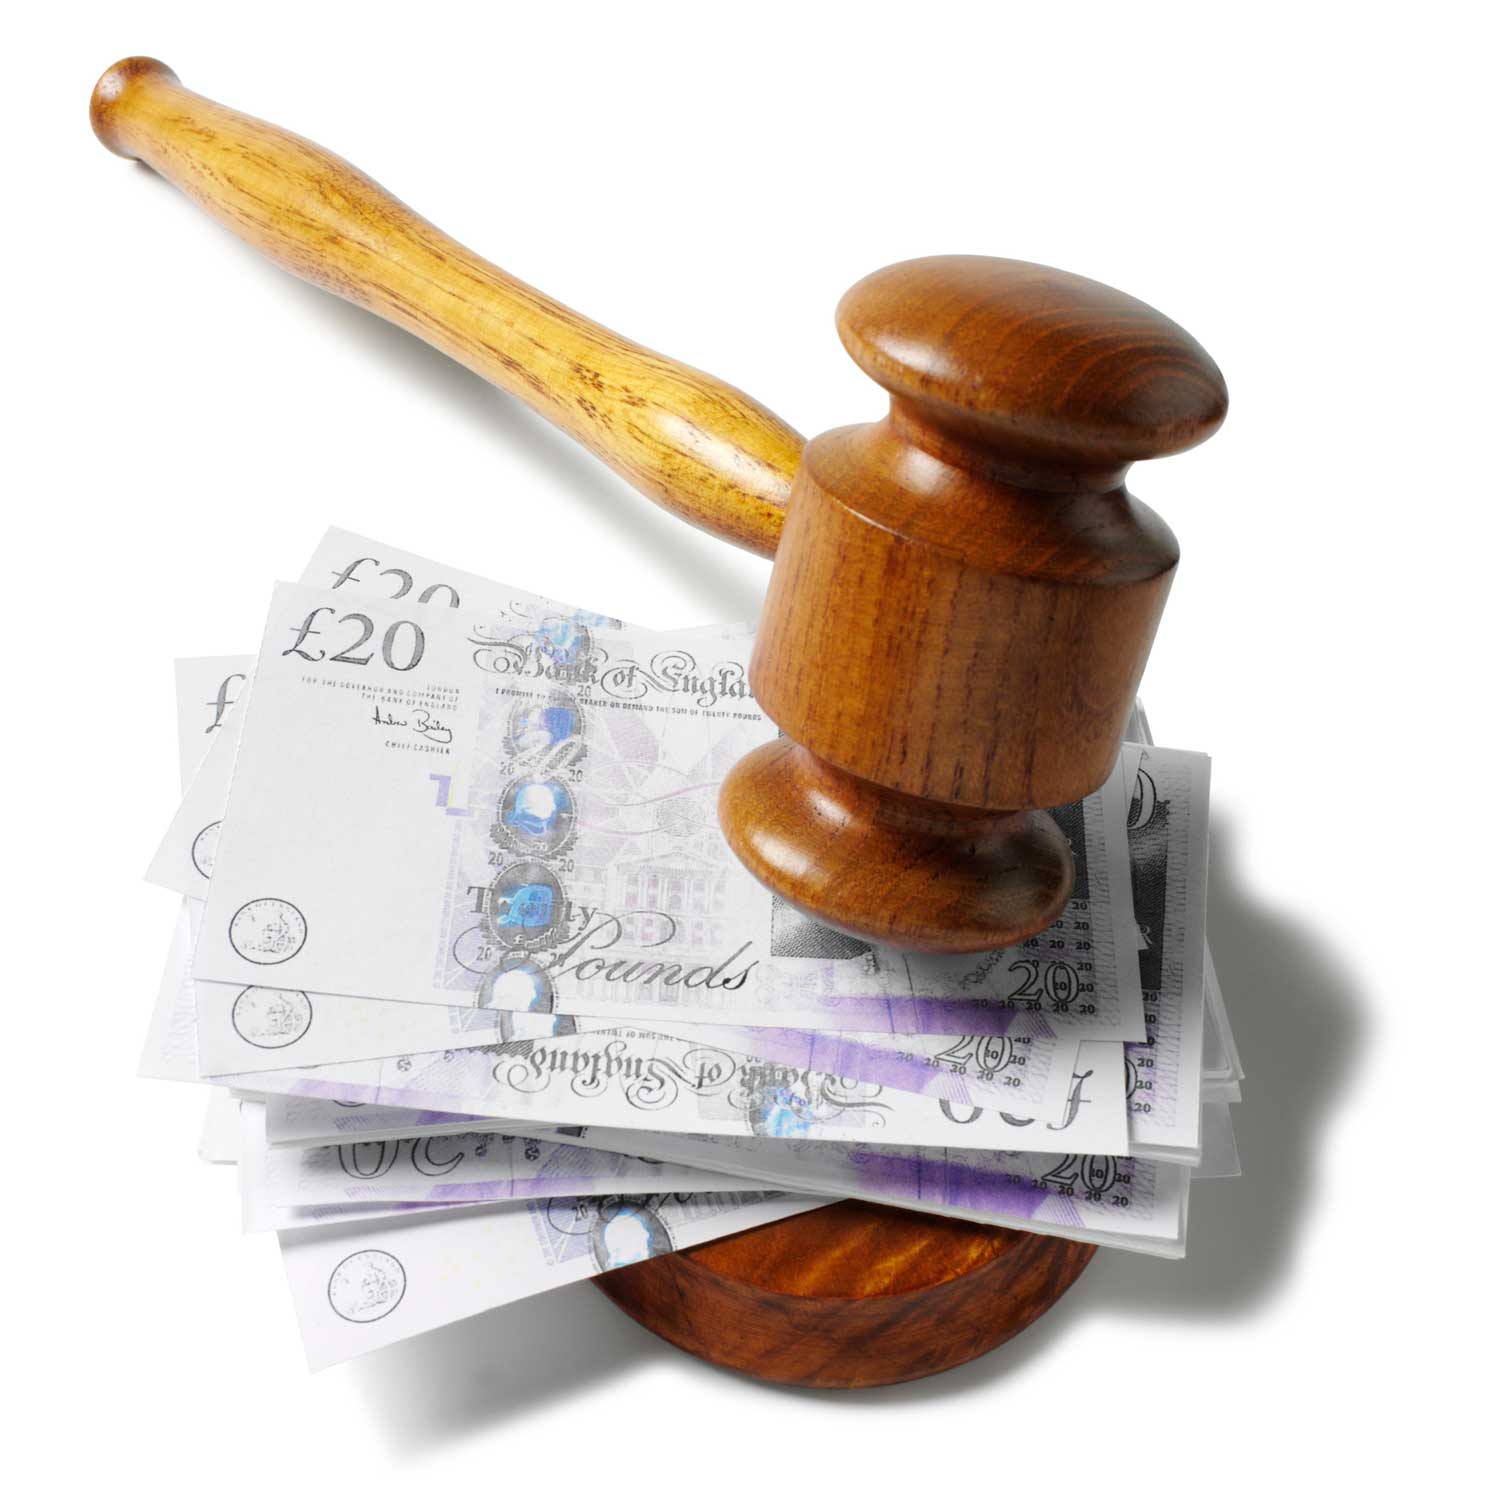 Landlord fined after failing to improve property he was renting out